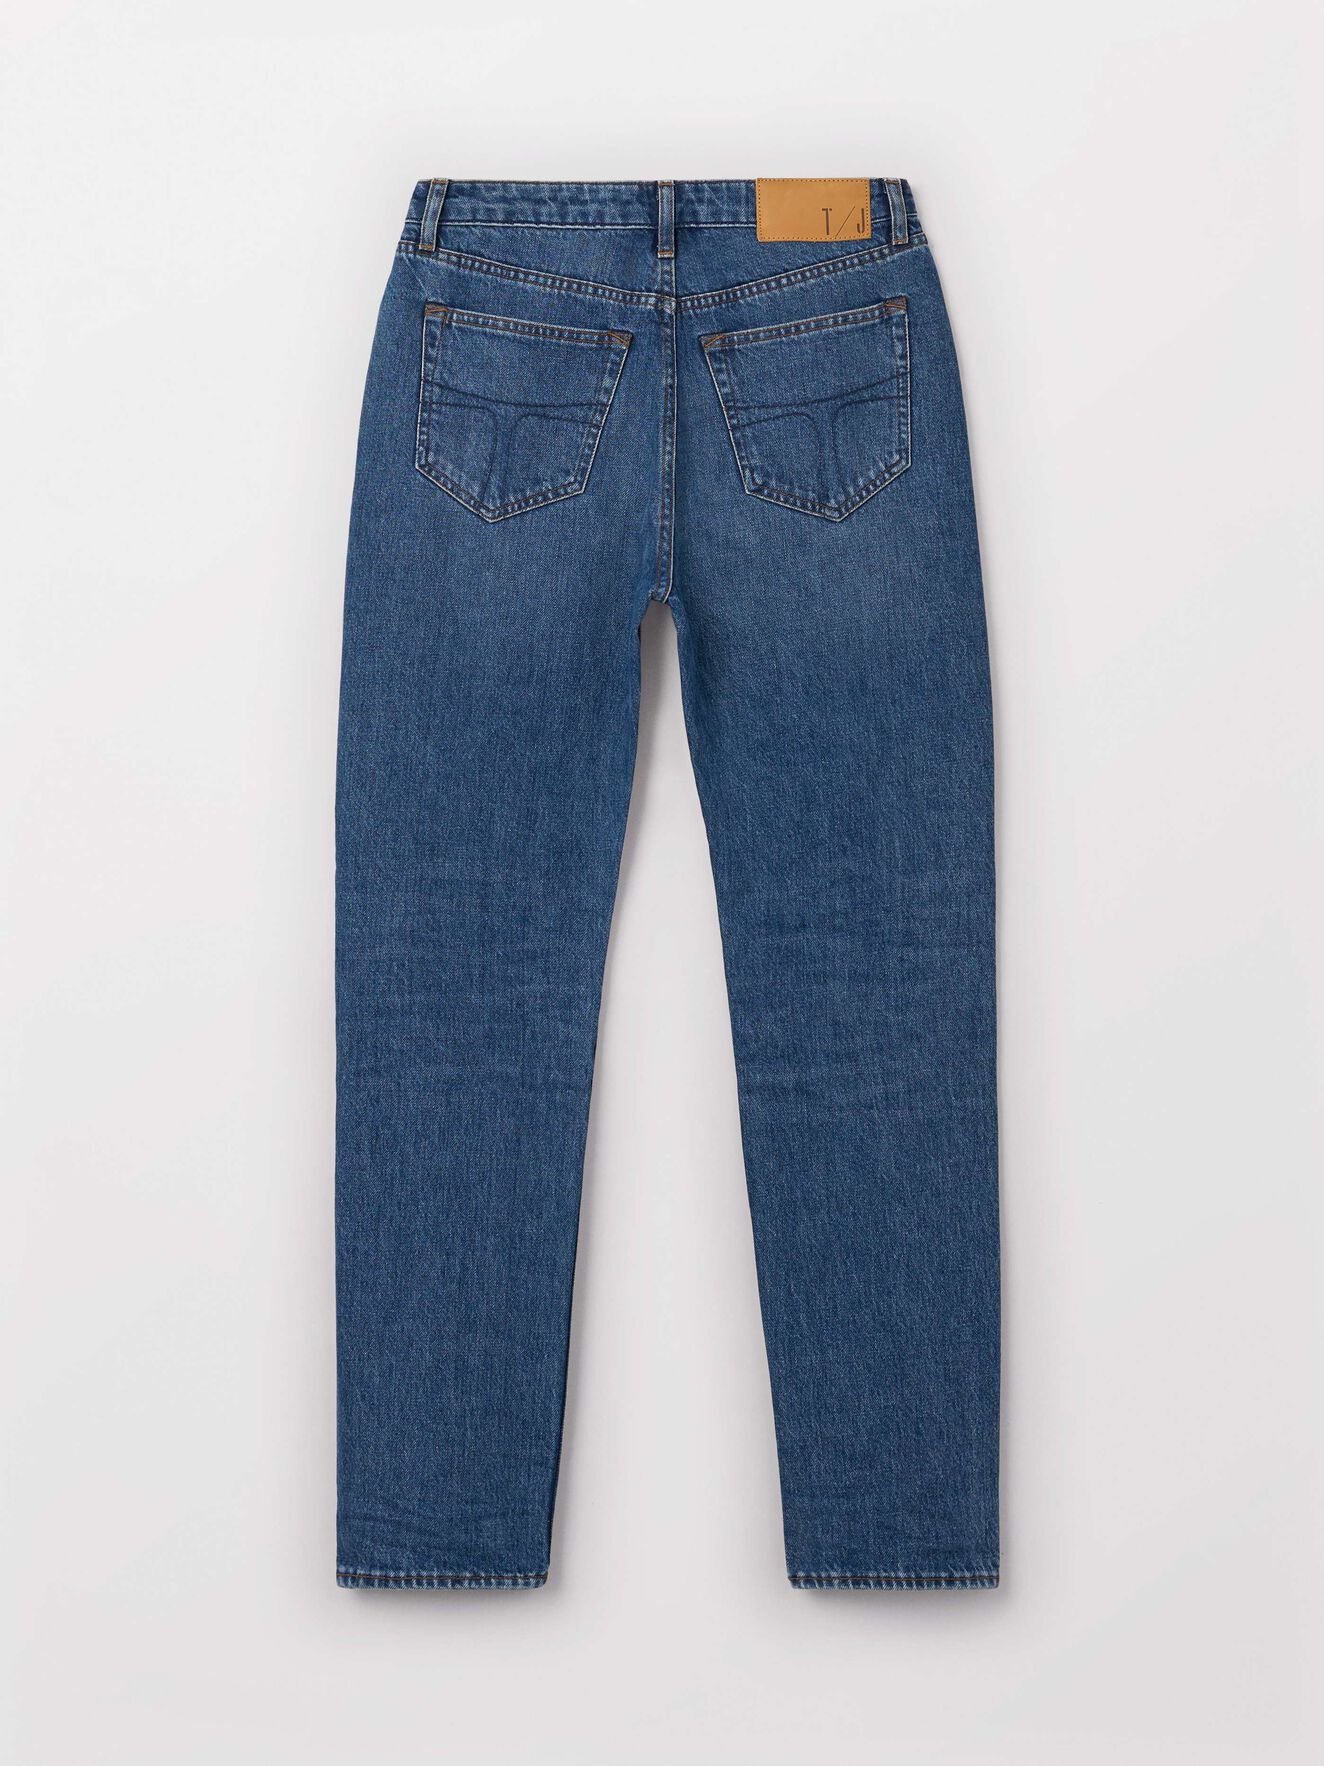 Lex Jeans in Medium Blue from Tiger of Sweden